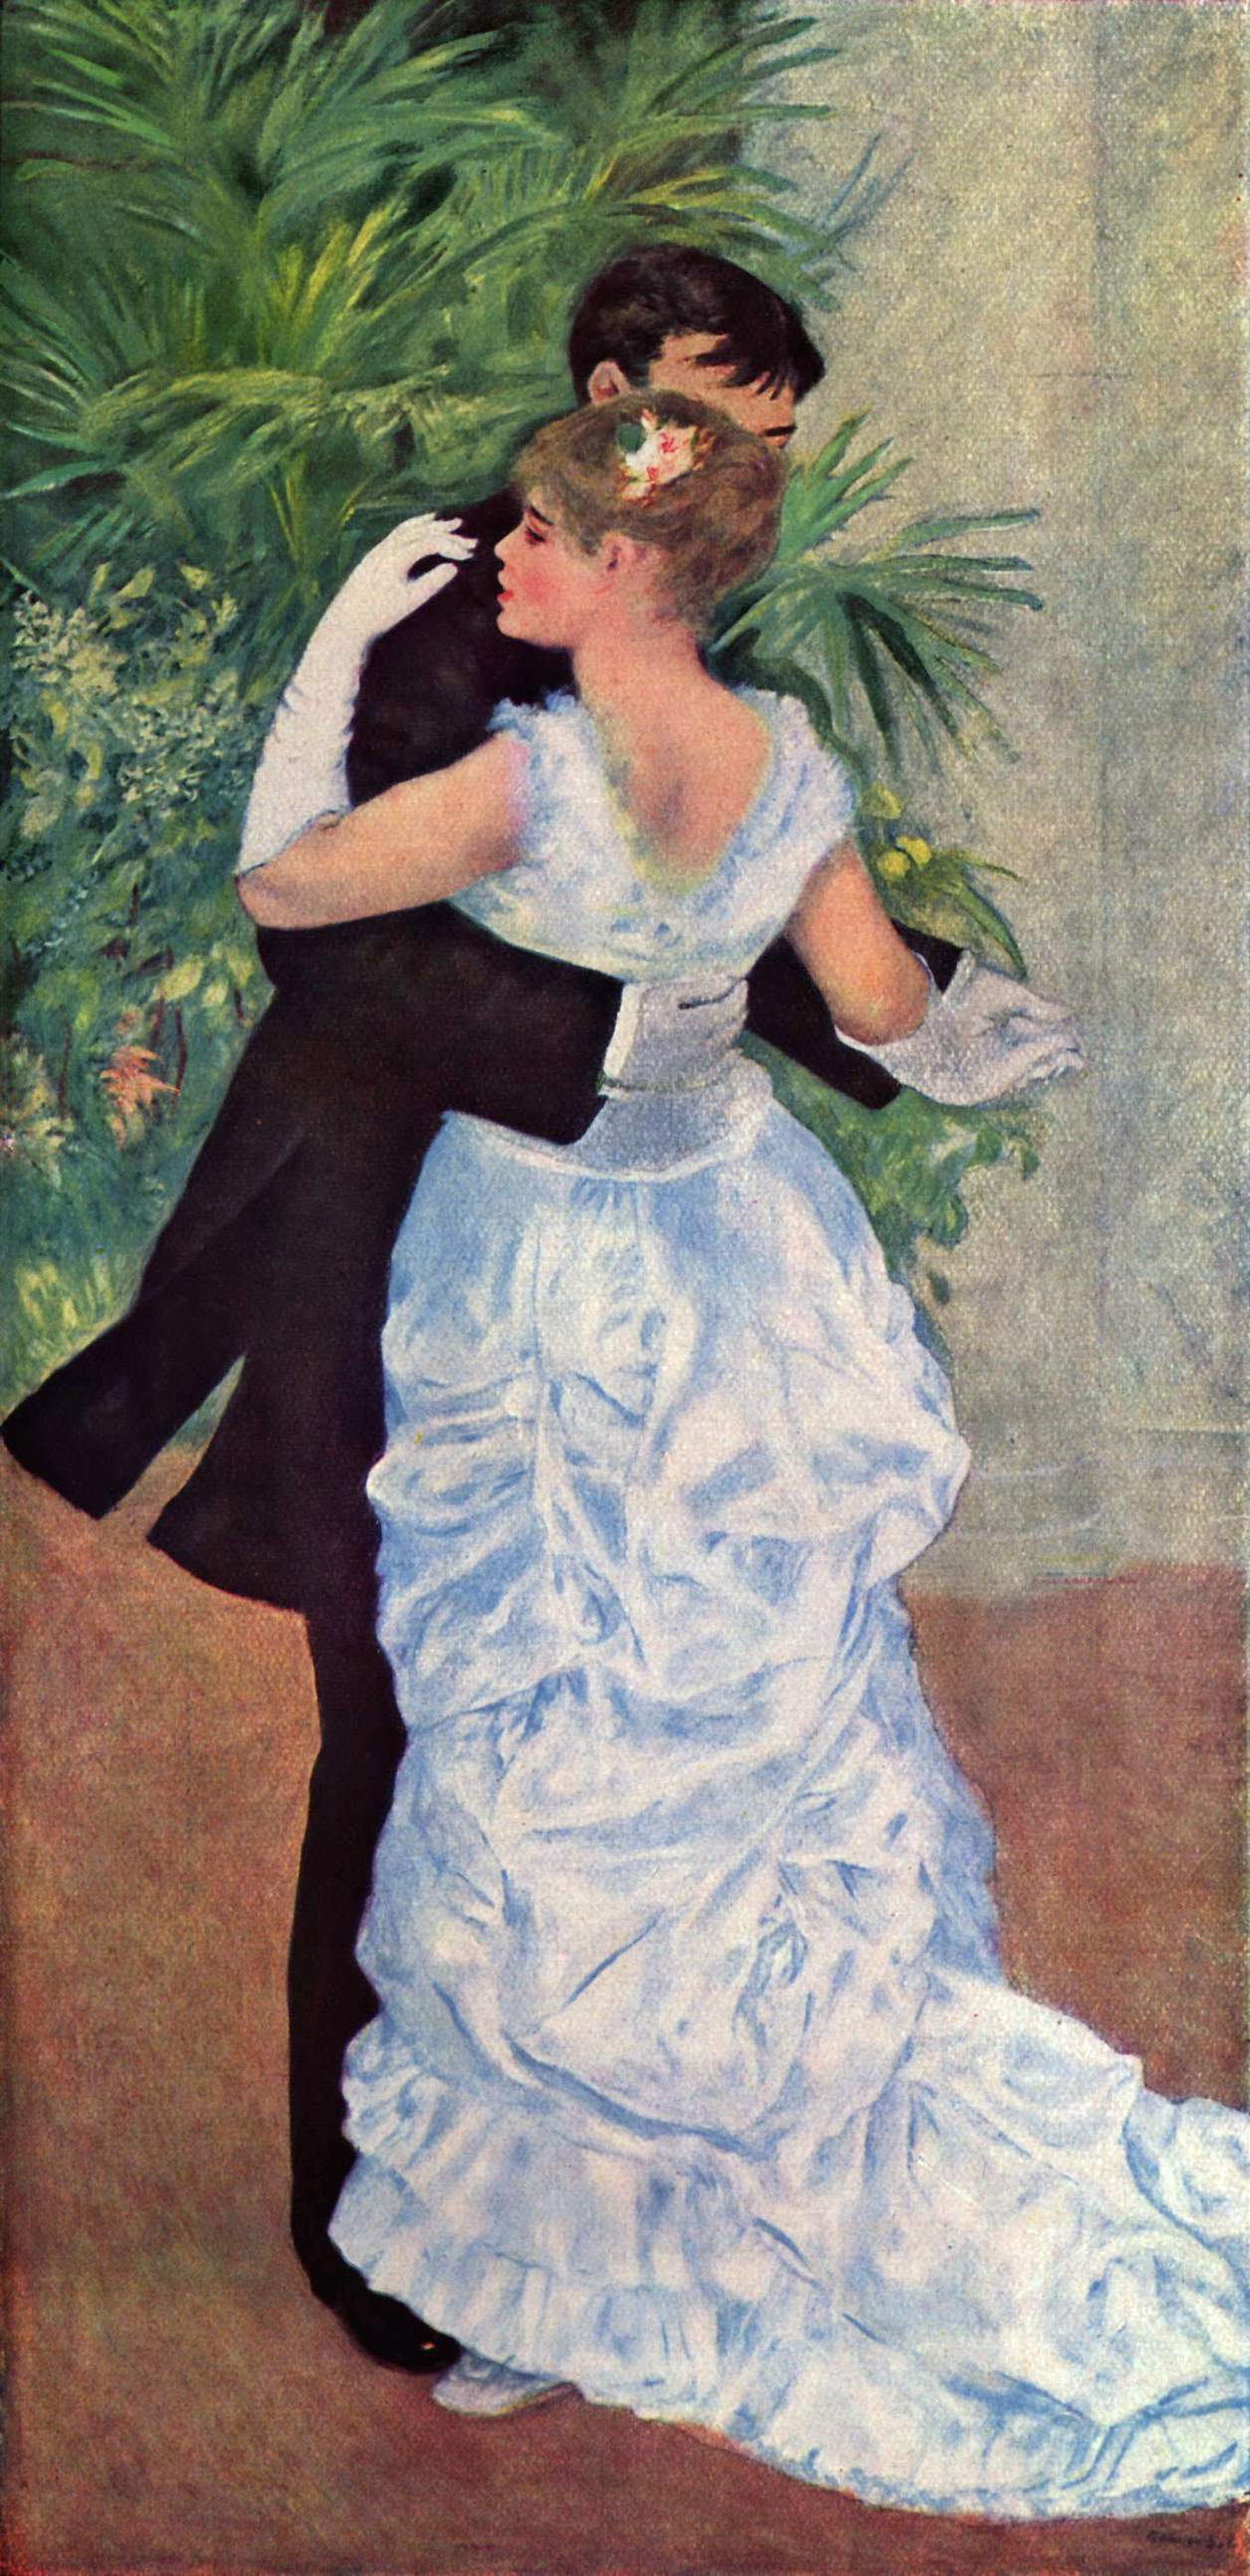 https://upload.wikimedia.org/wikipedia/commons/1/12/Pierre-Auguste_Renoir_019.jpg